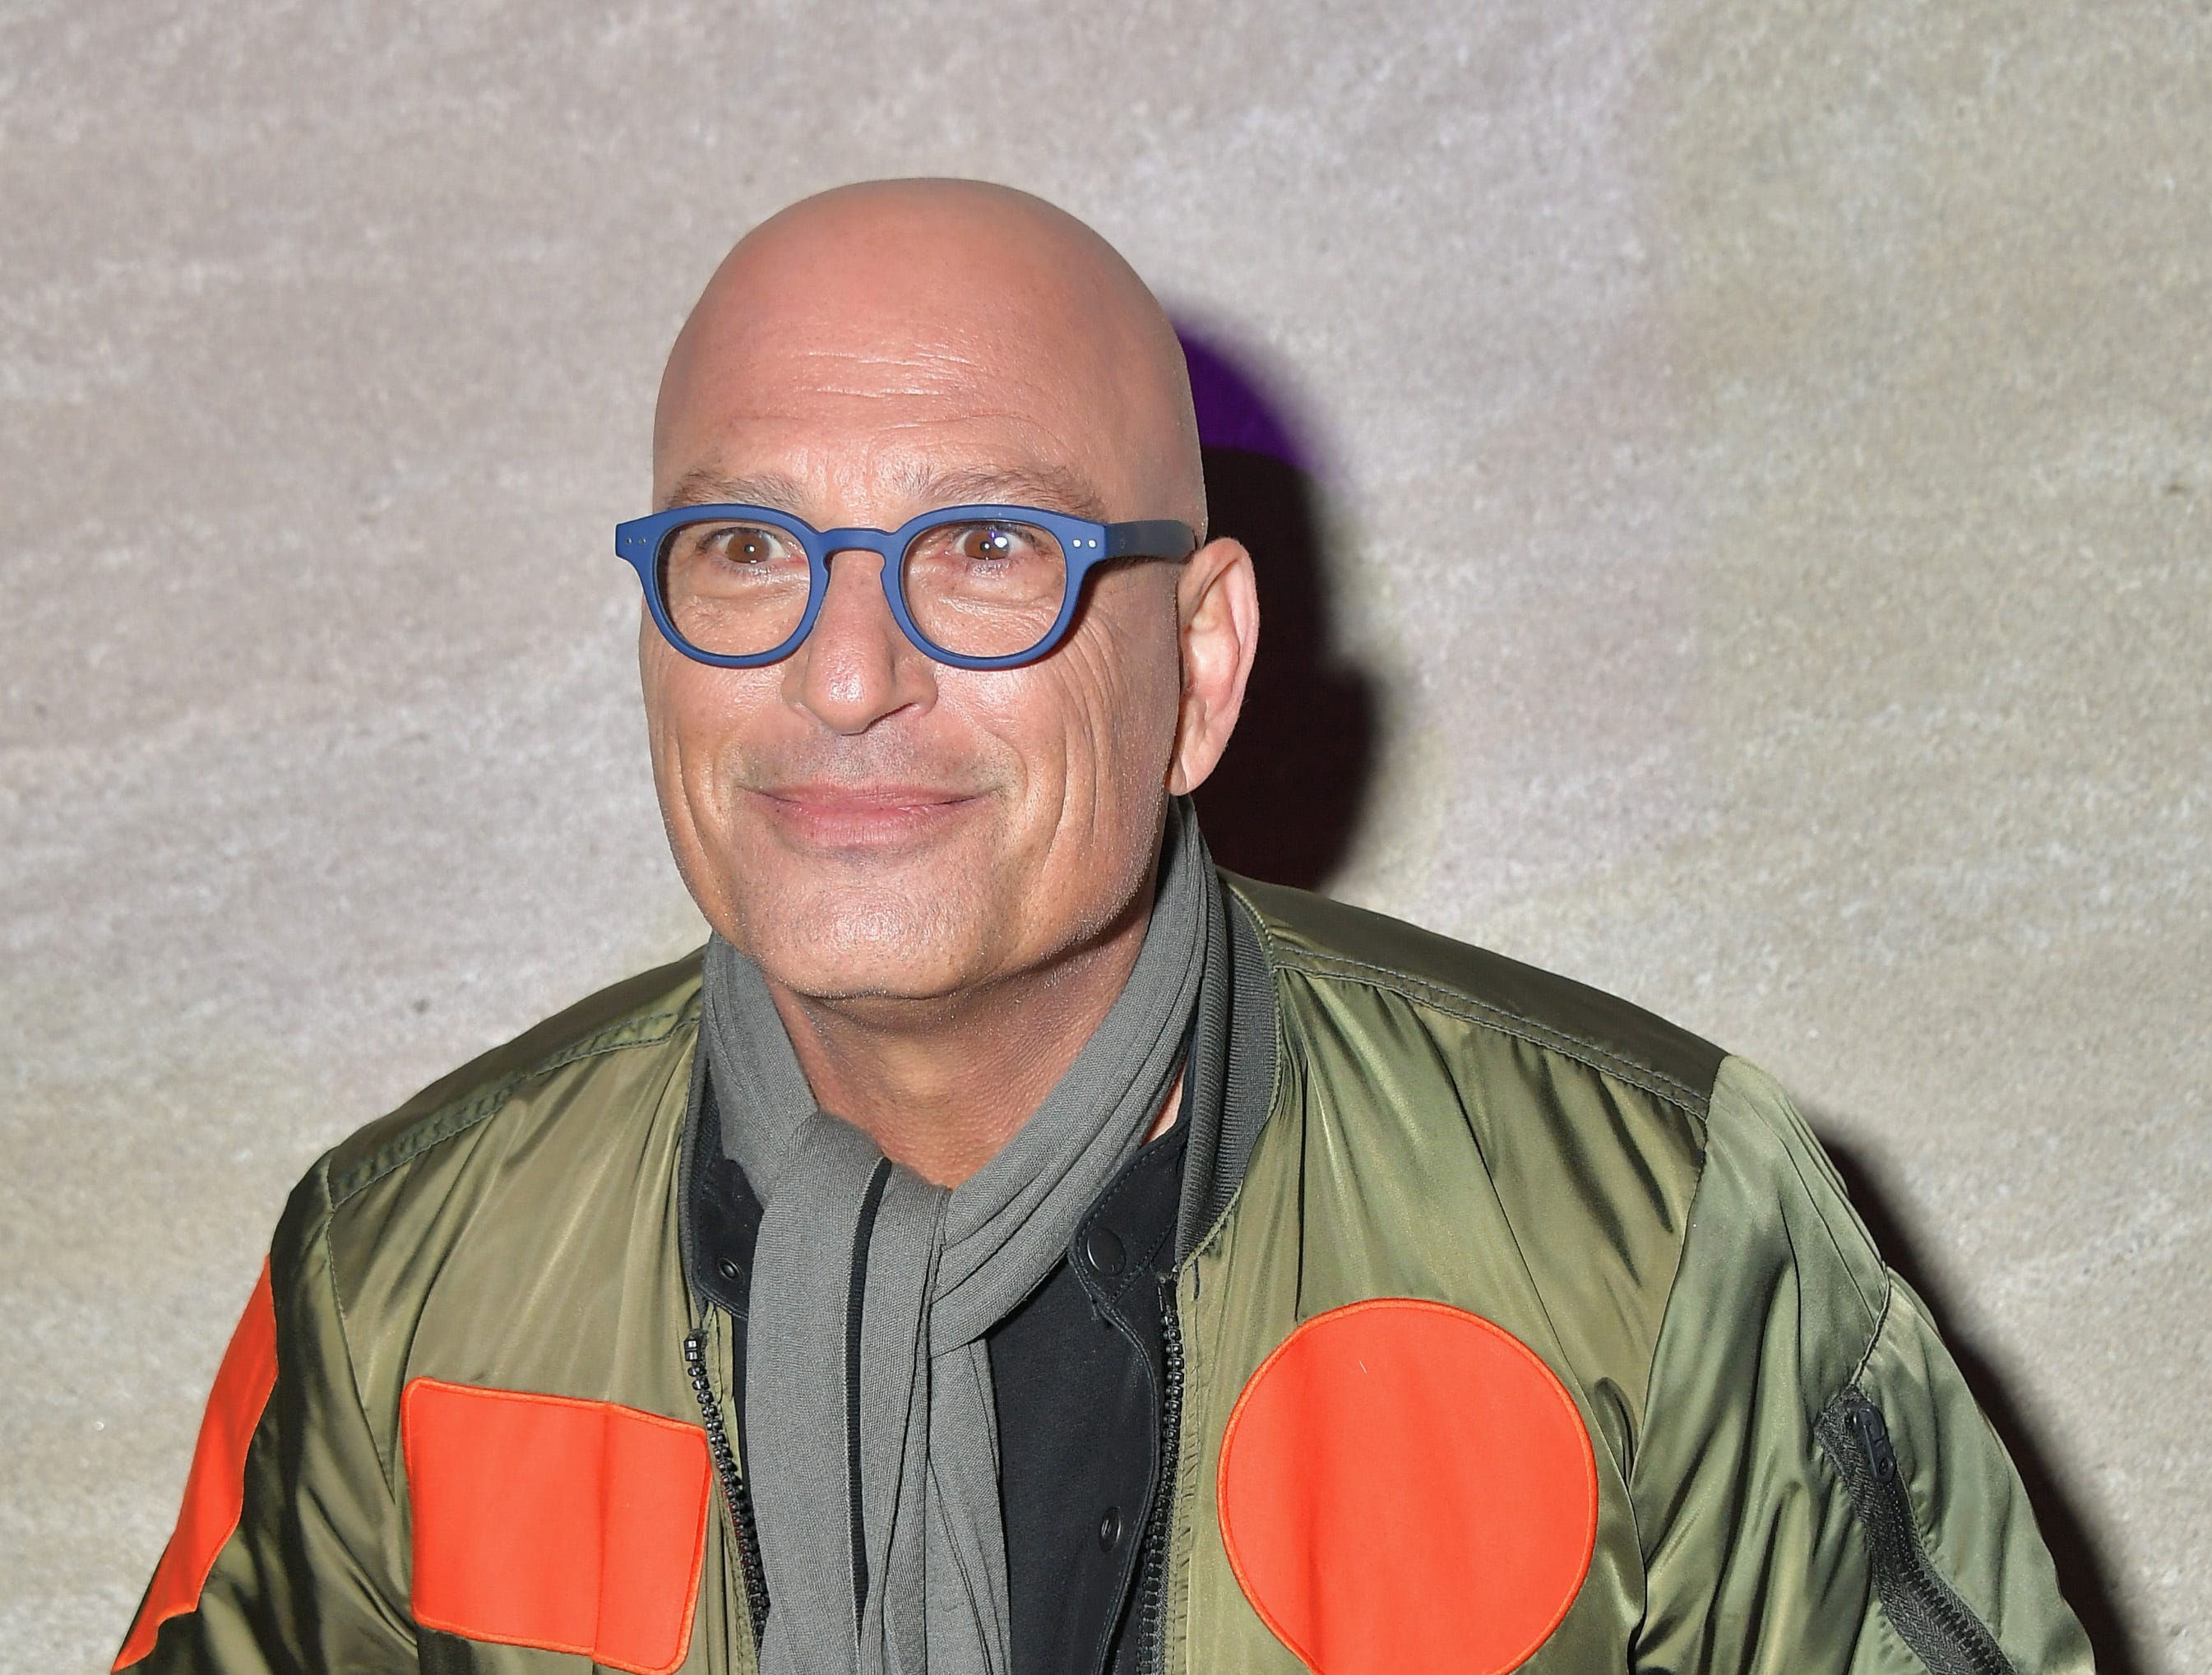 NEW YORK, NEW YORK - NOVEMBER 28: Howie Mandel attends the 86th Annual Rockefeller Center Christmas Tree Lighting Ceremony at Rockefeller Center on November 28, 2018 in New York City. (Photo by Michael Loccisano/Getty Images)